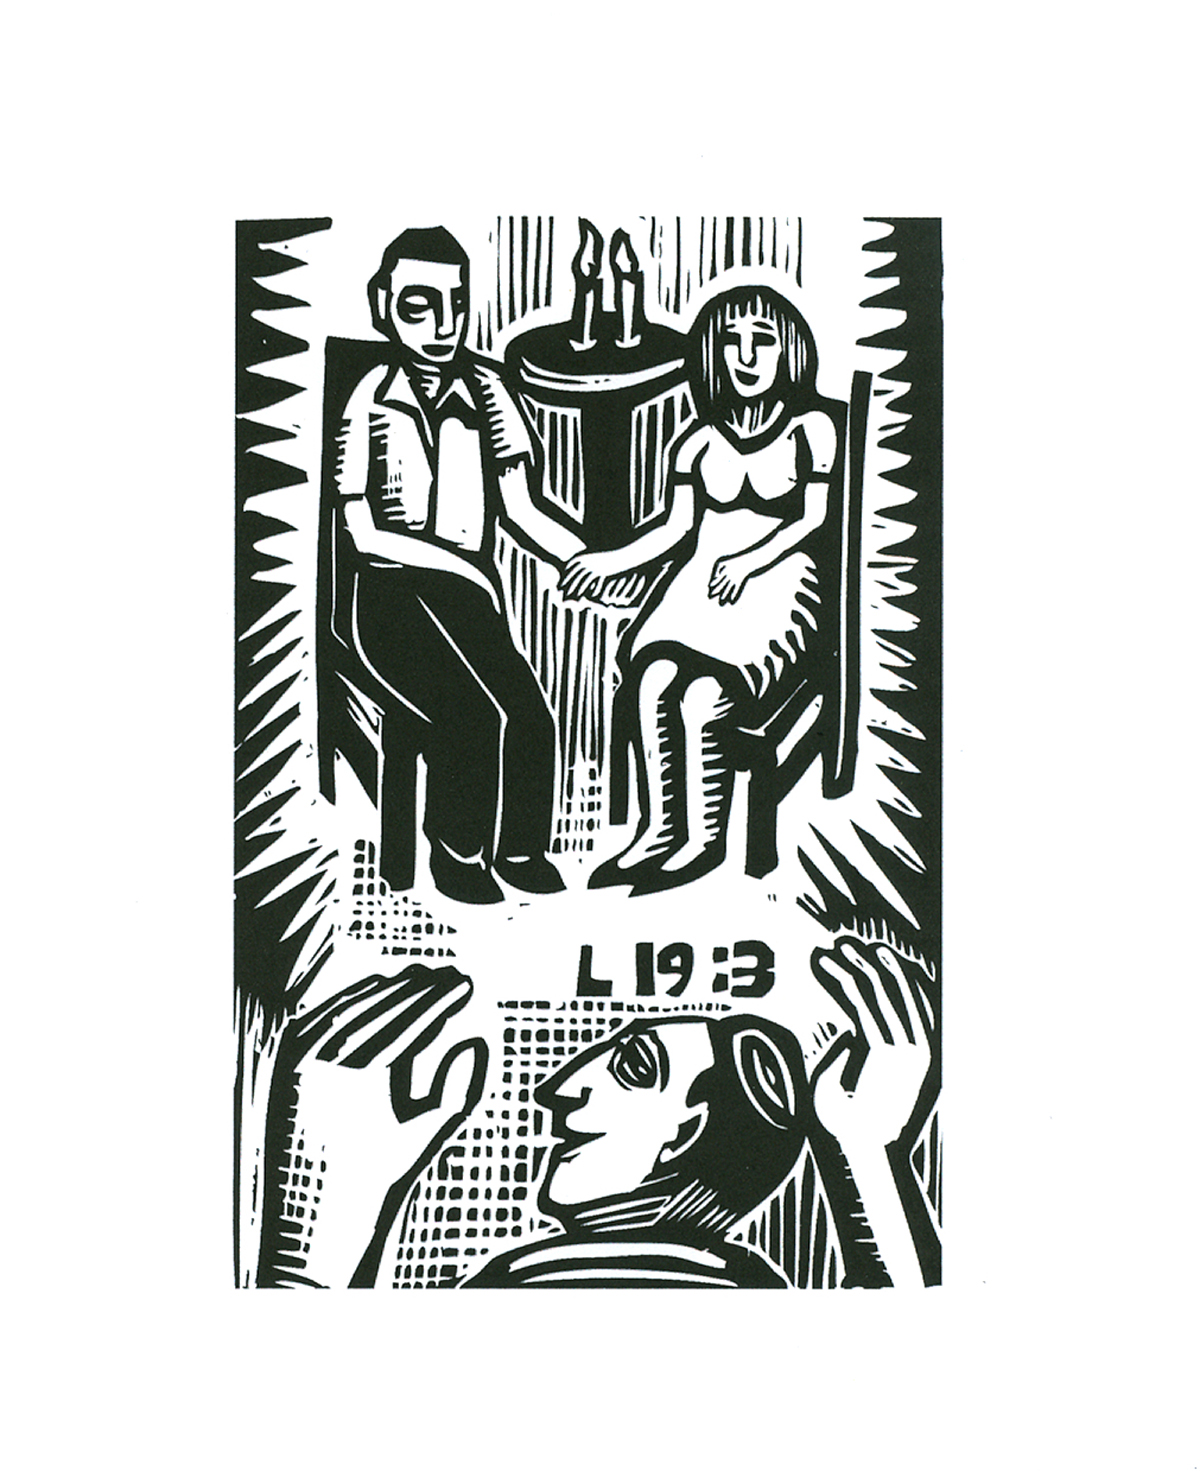 L 19:3 (2007), digital woodcut by David Holzman Courtesy the artist